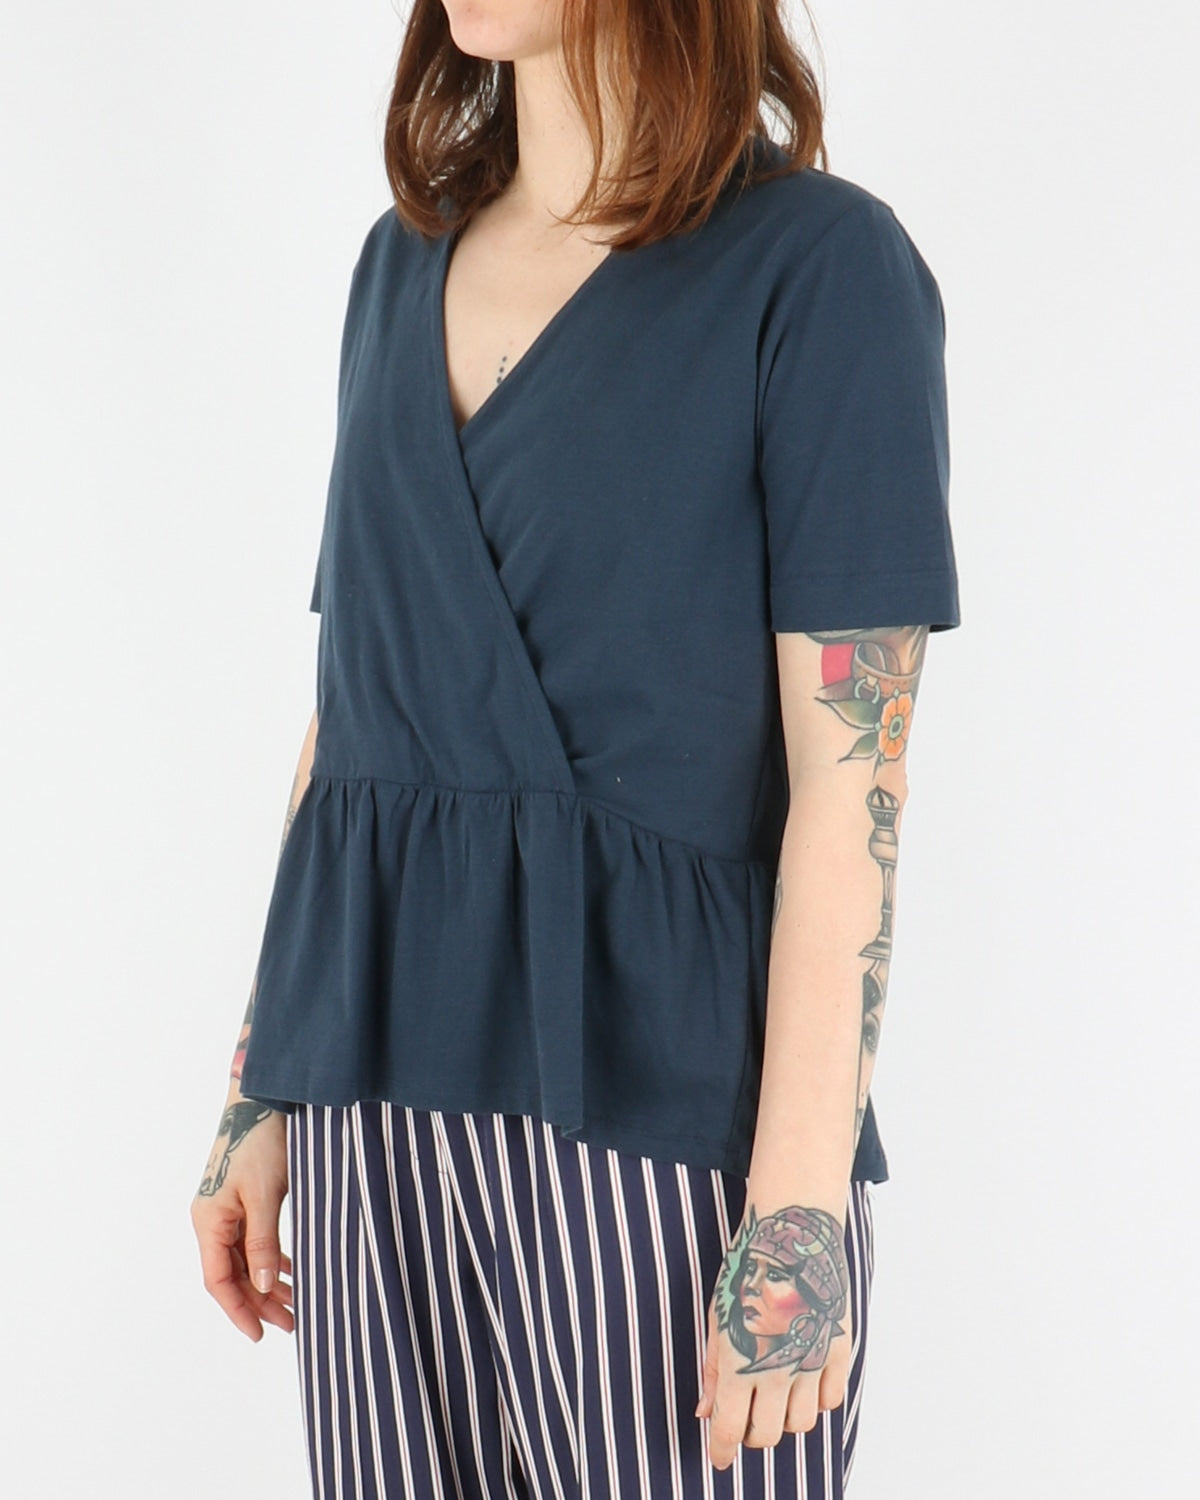 libertine libertine_grace top_navy_2_3